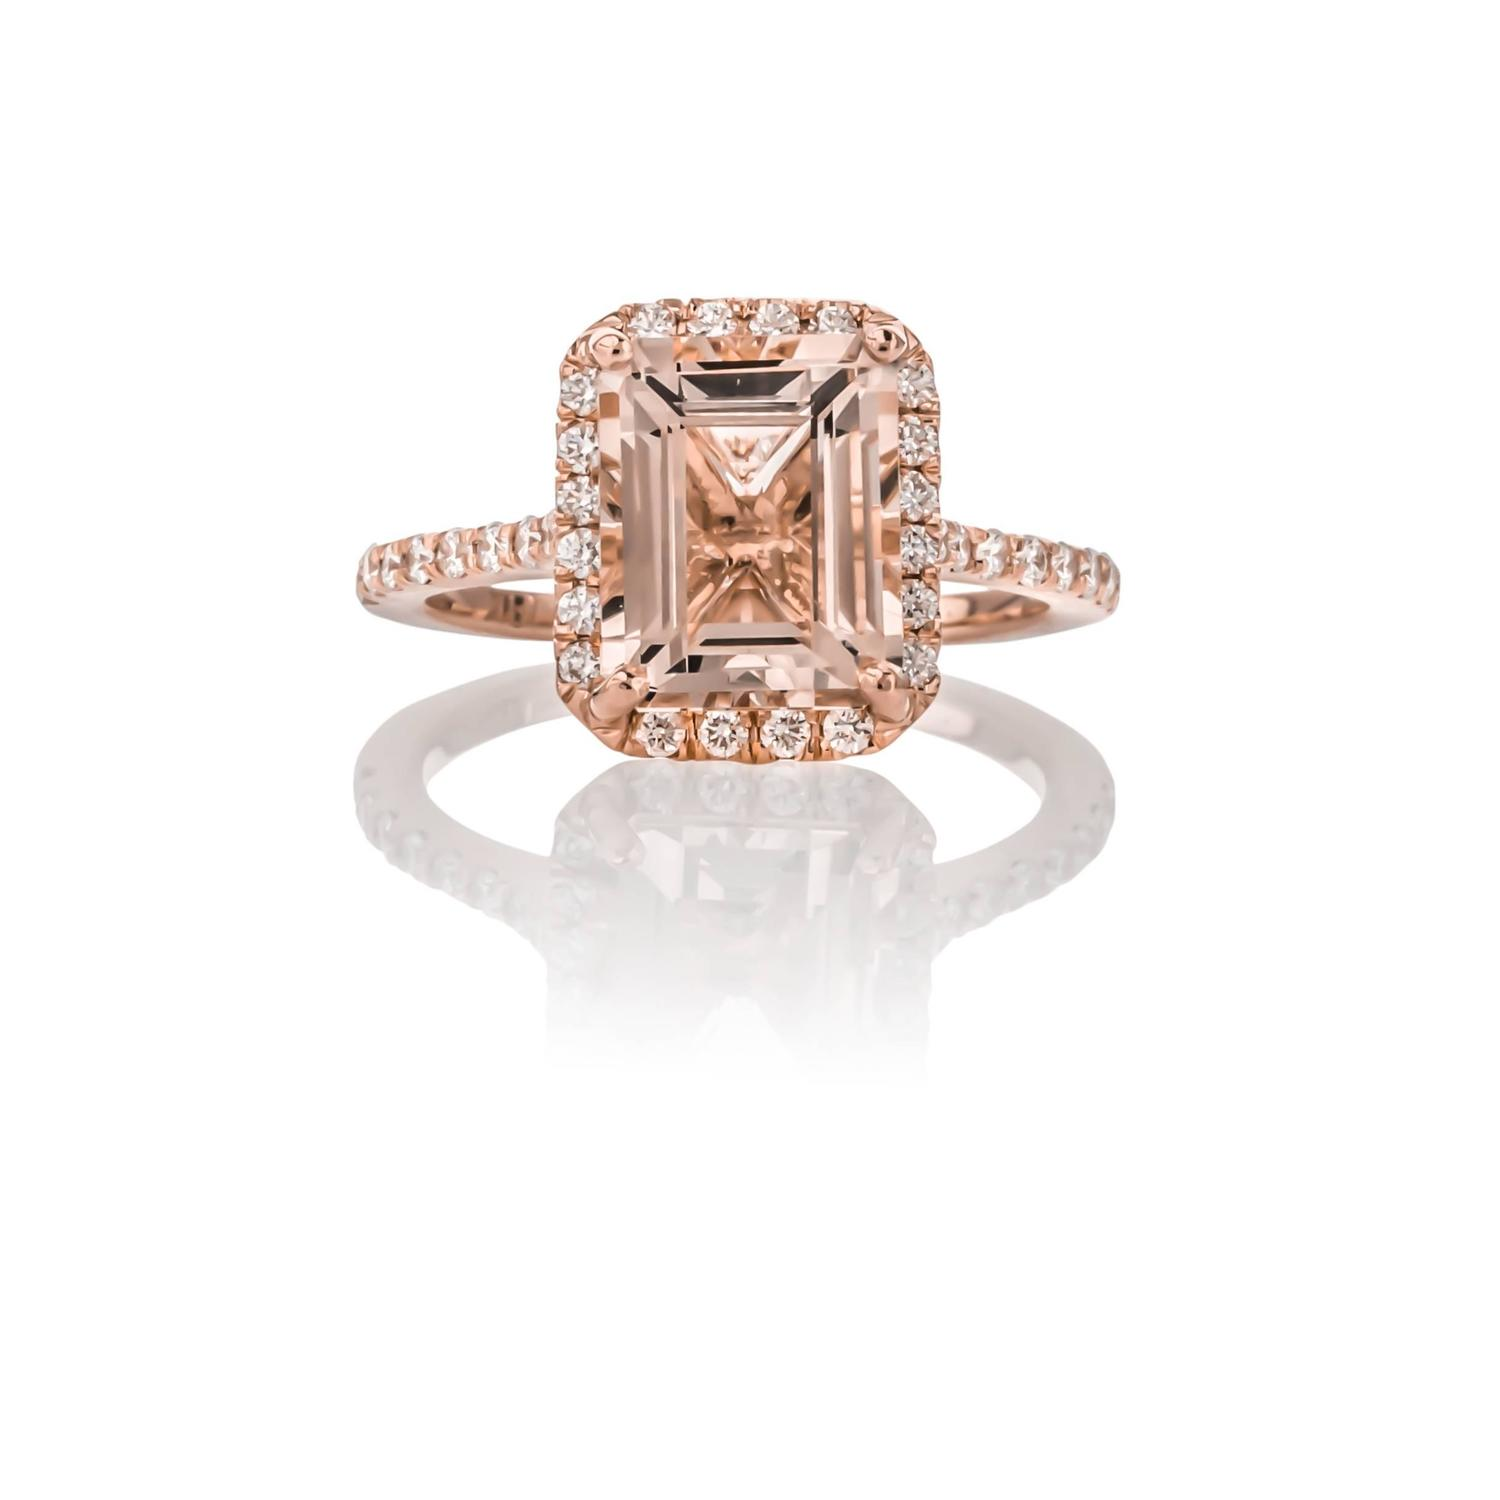 e of a Kind 3 58 Carat Morganite and Diamond Ring For Sale at 1stdibs